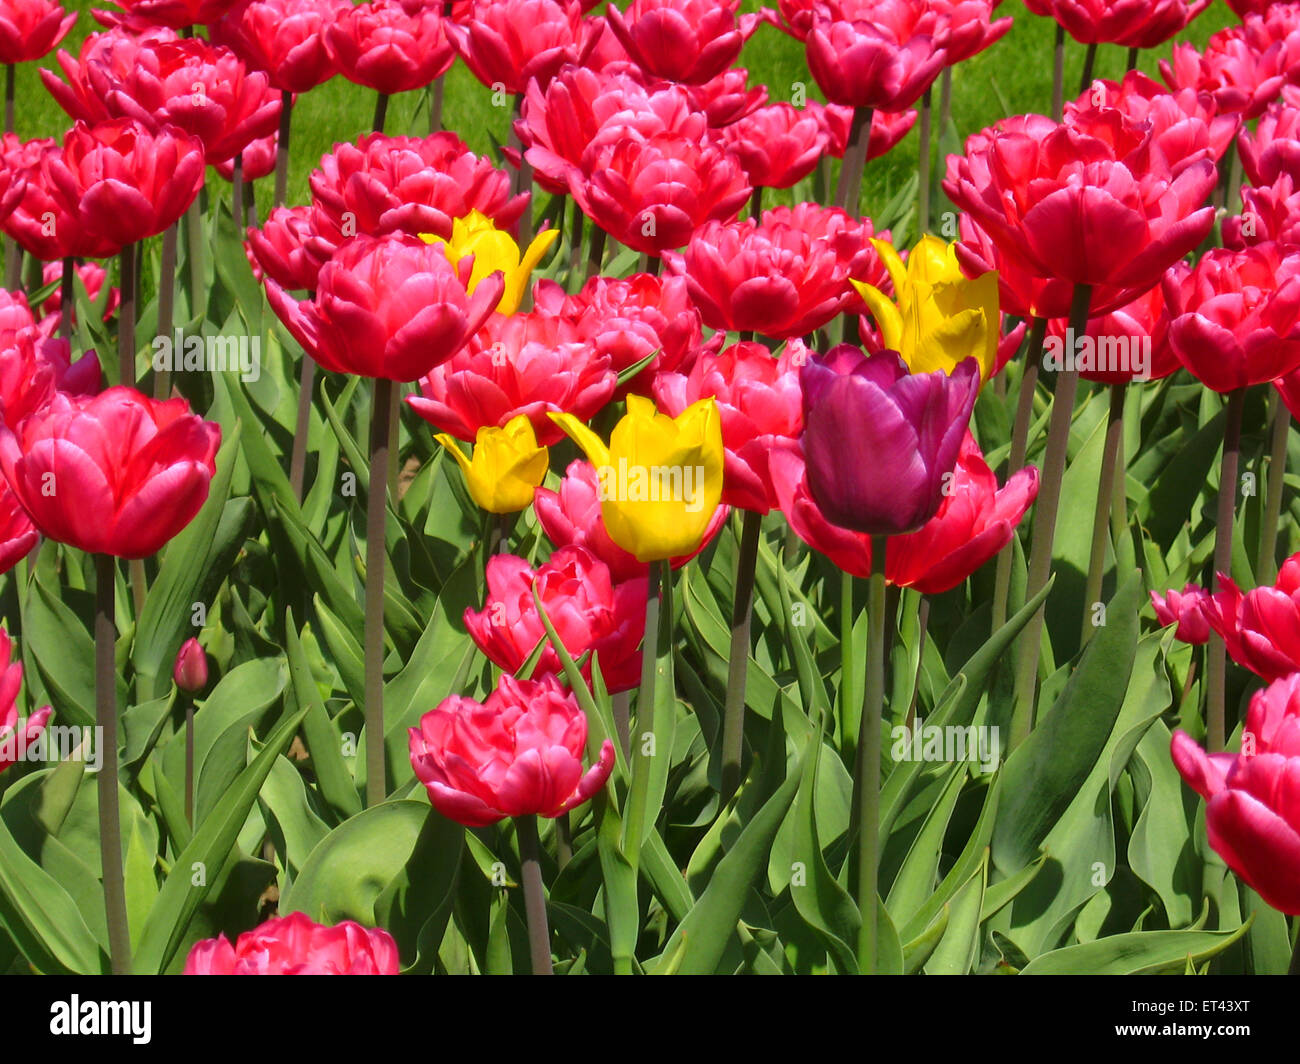 Flowerbed with many pink tulips, with few yellow ones, horizontal. Date of recording 30/04/2008. - Stock Image